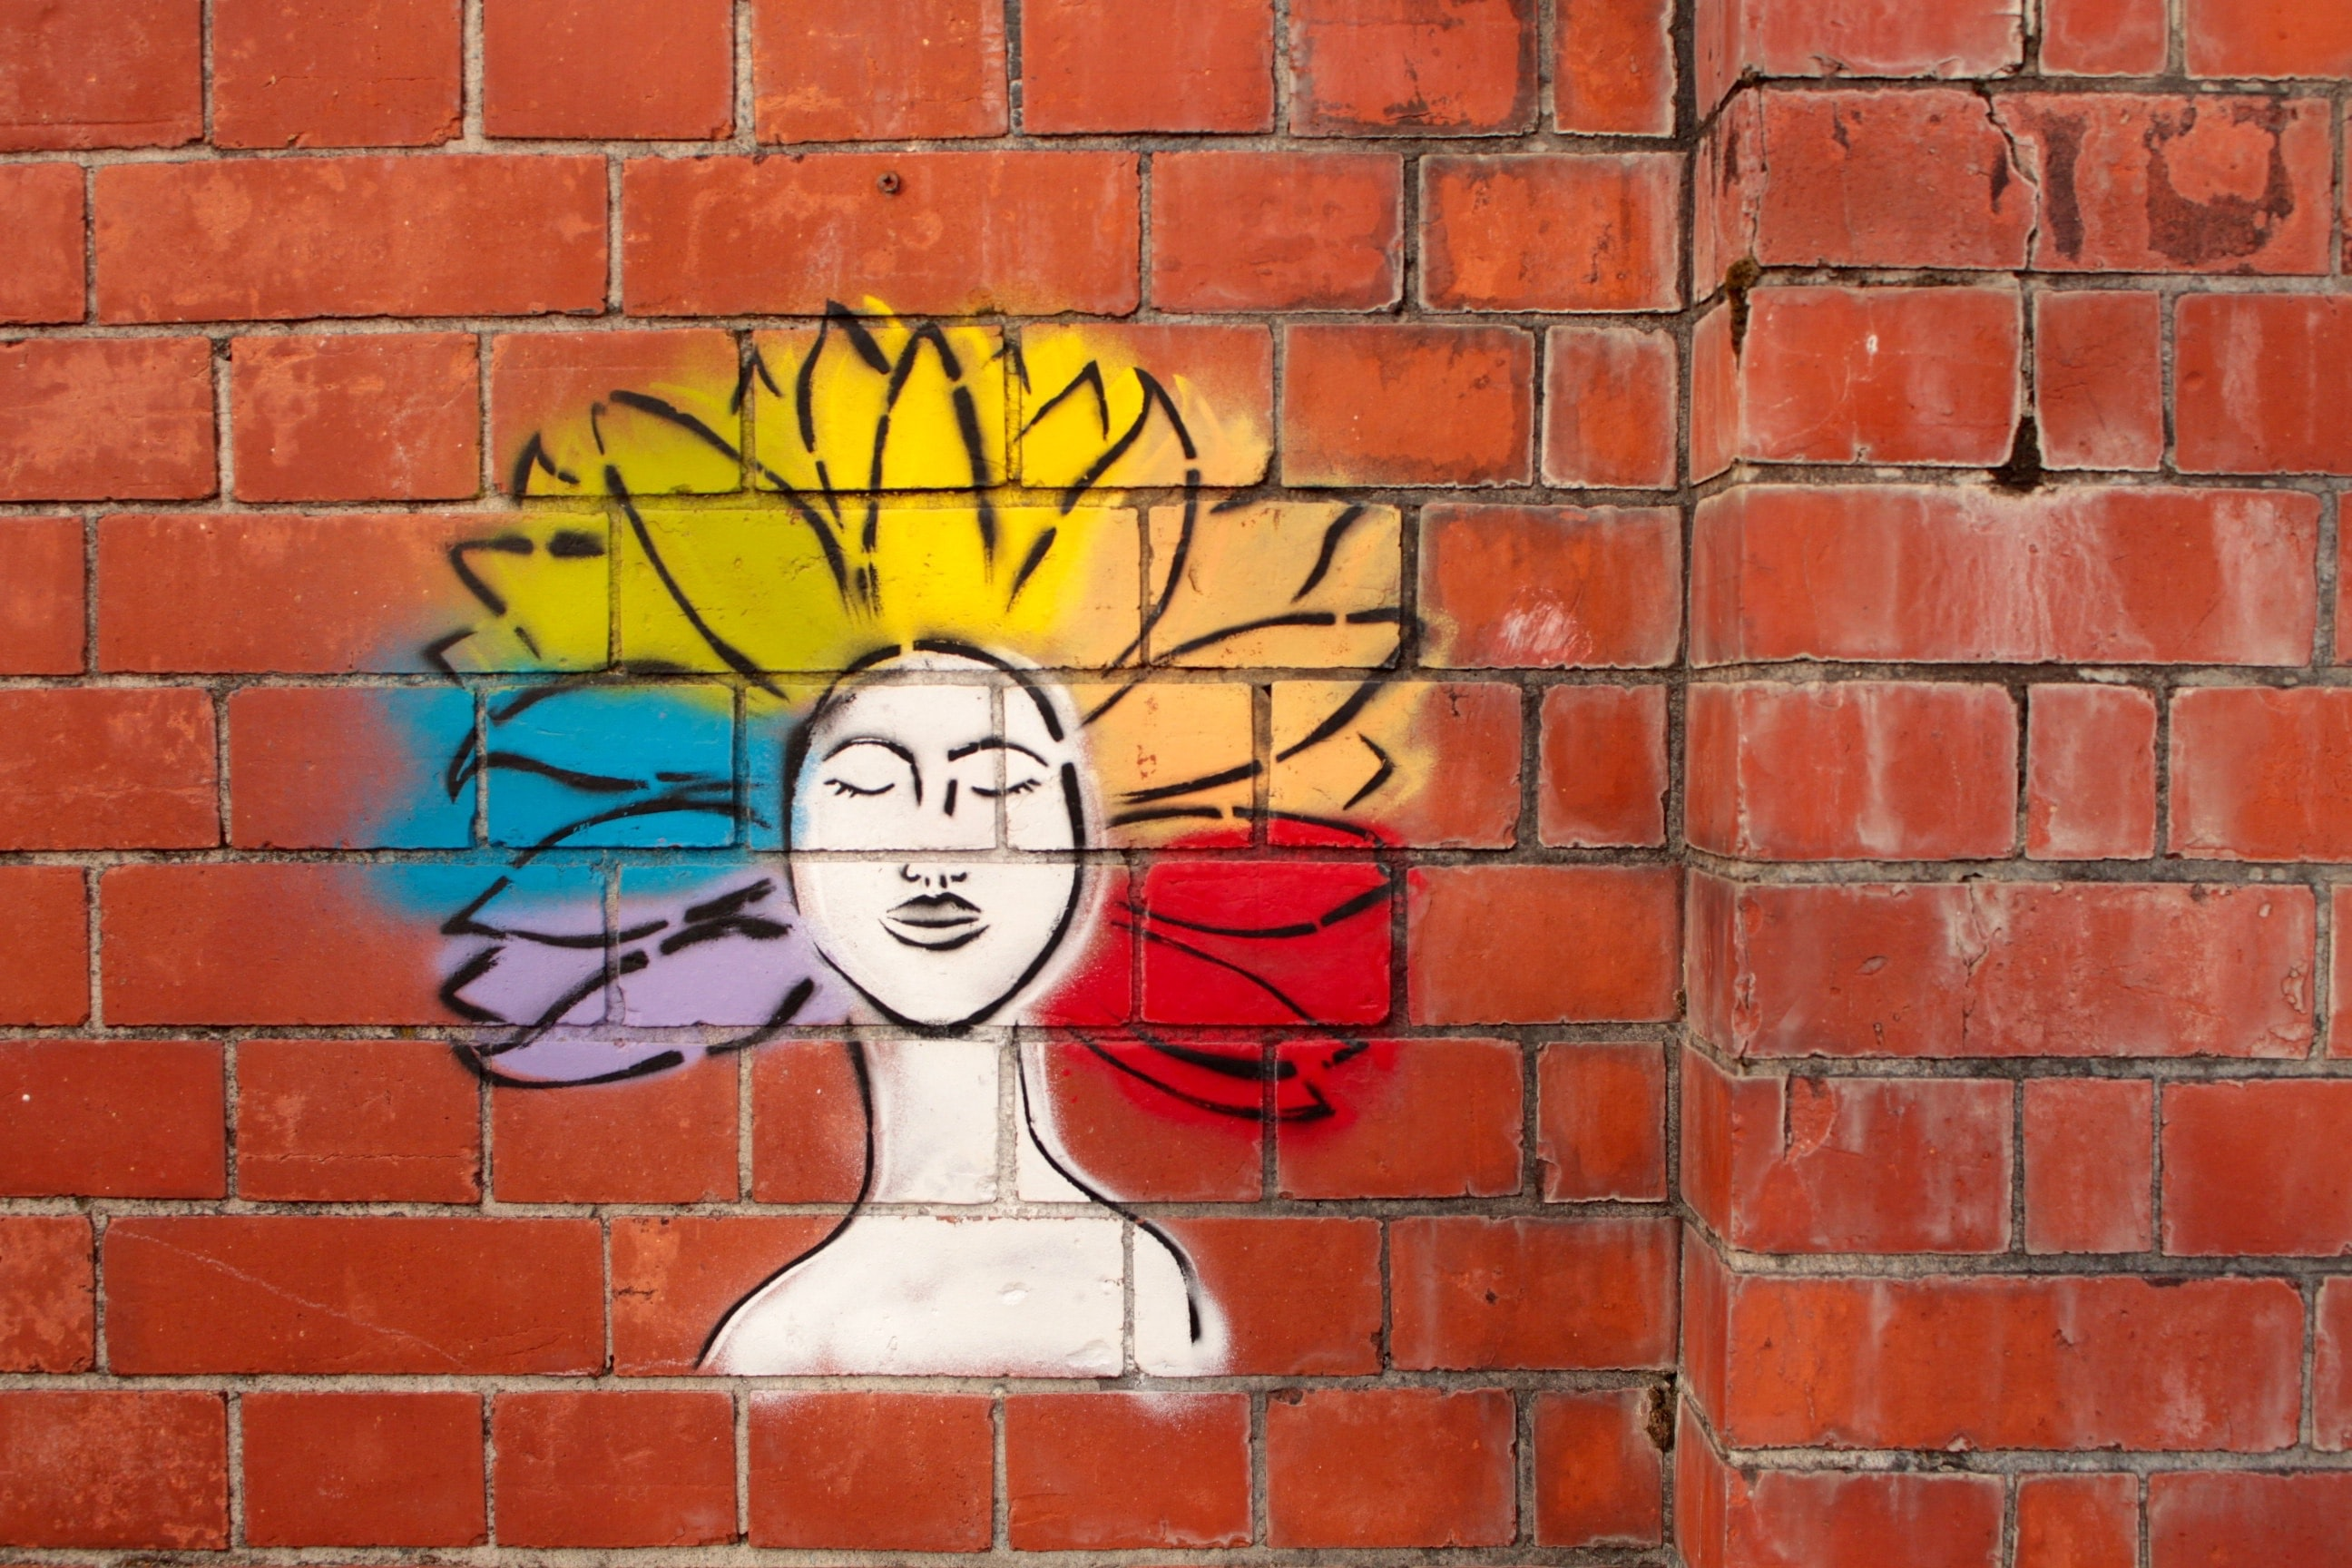 paint spray art of woman on brown brick wall